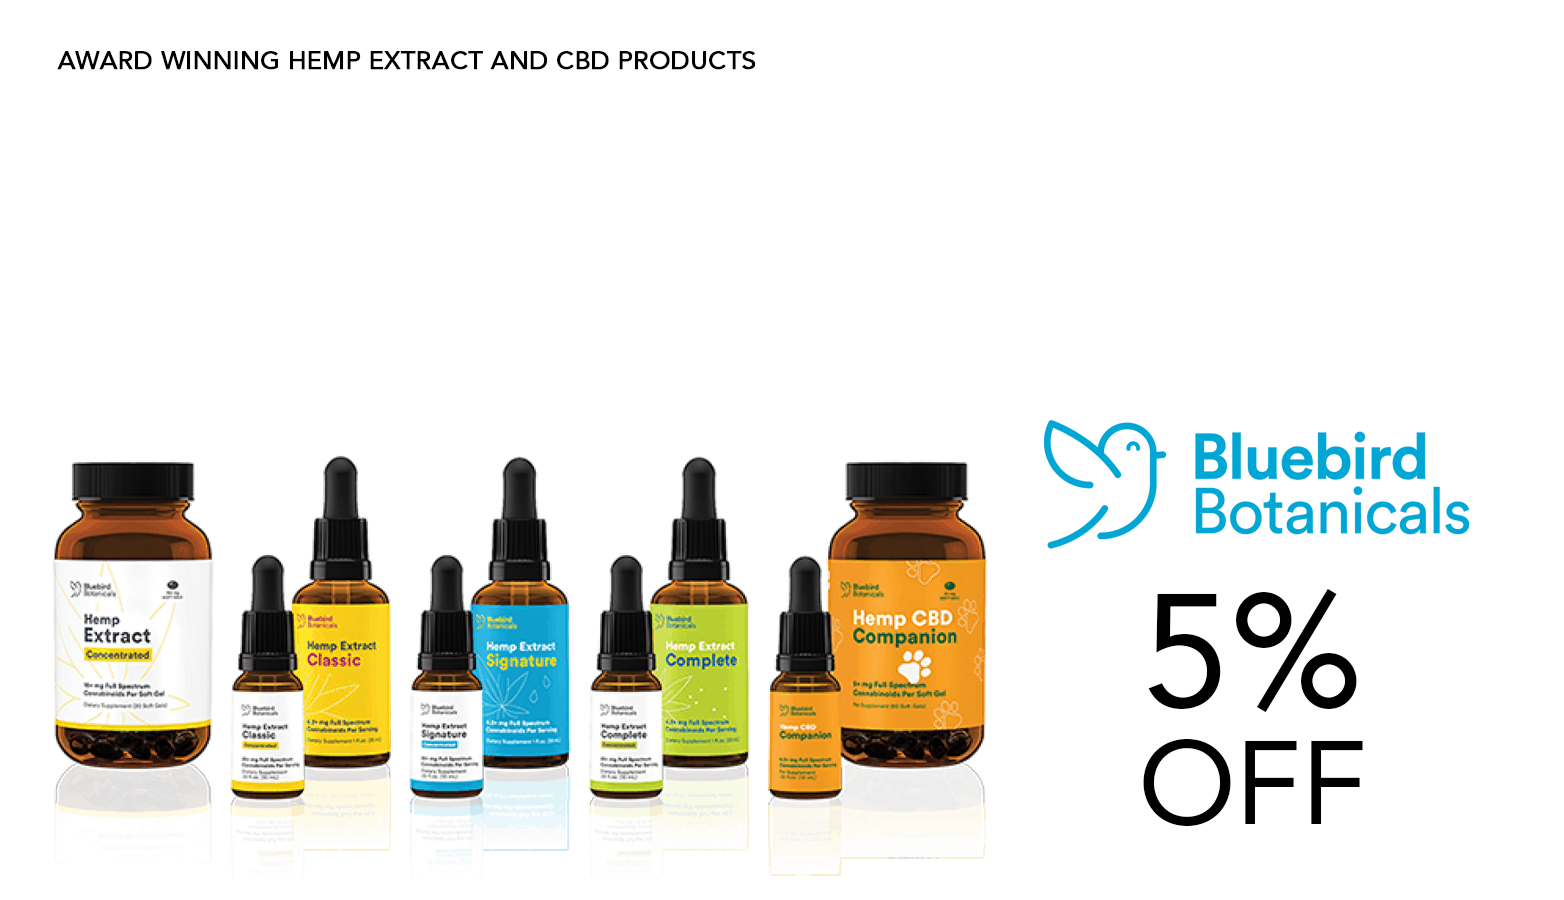 Bluebird Botanicals CBD Coupon Code 5 Percent Off Discount